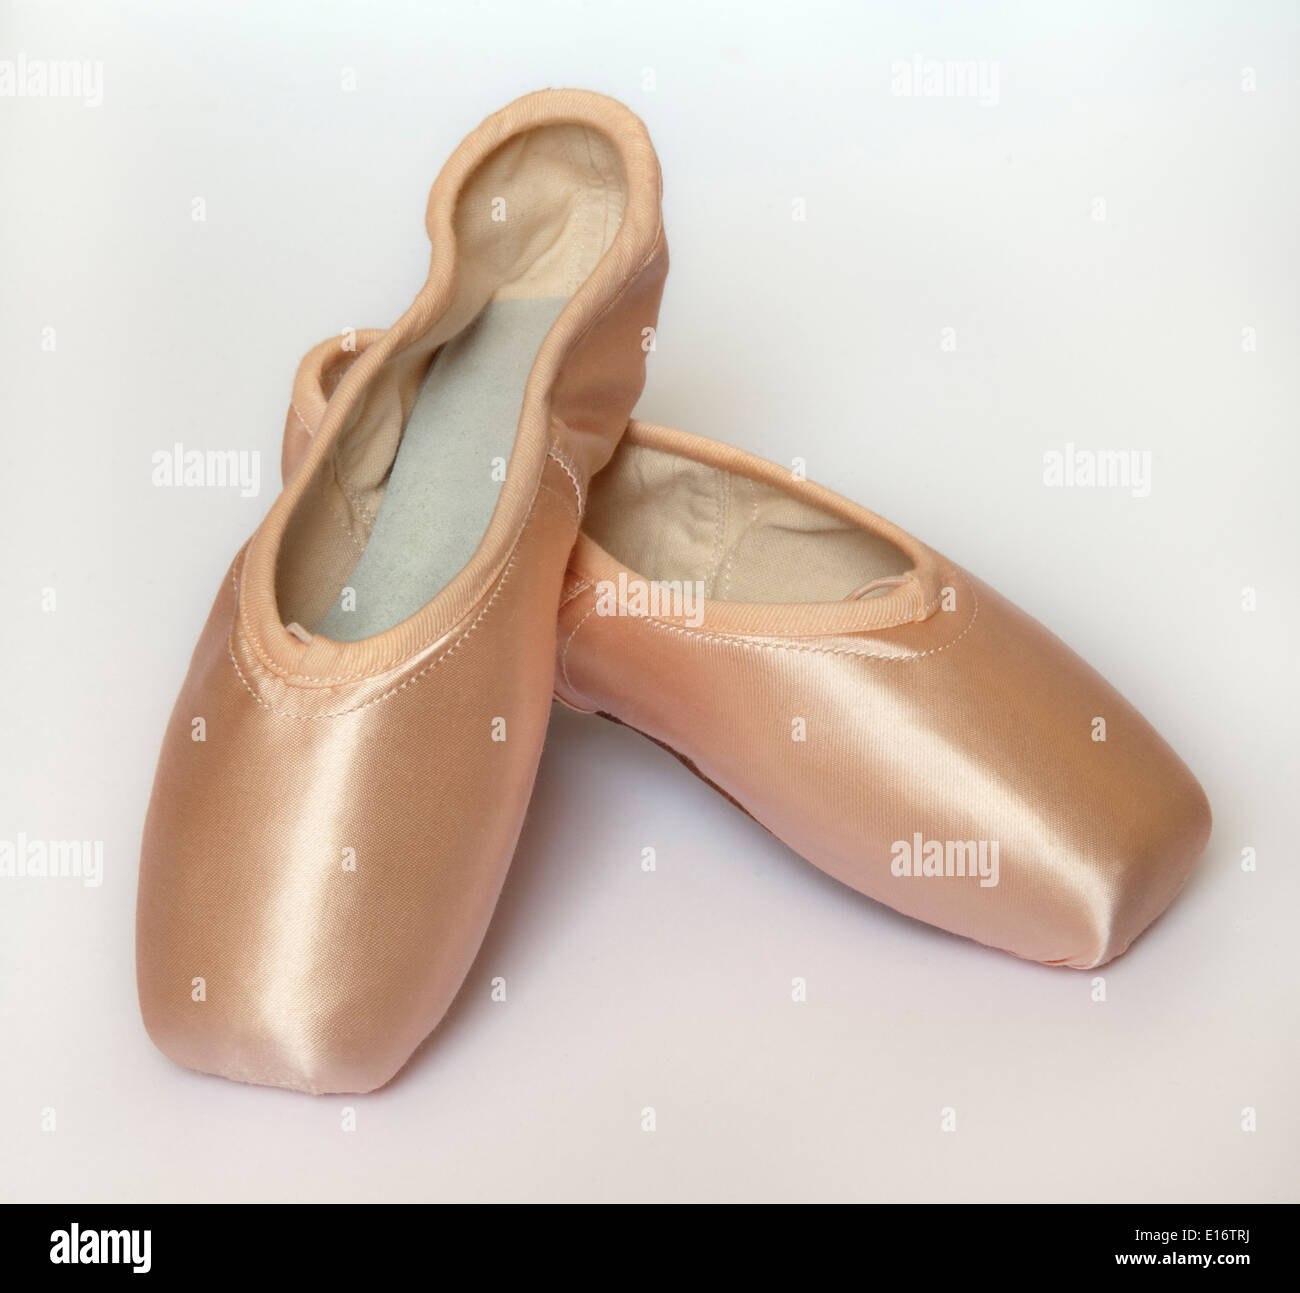 pair of pointe shoes on white background - Stock Image